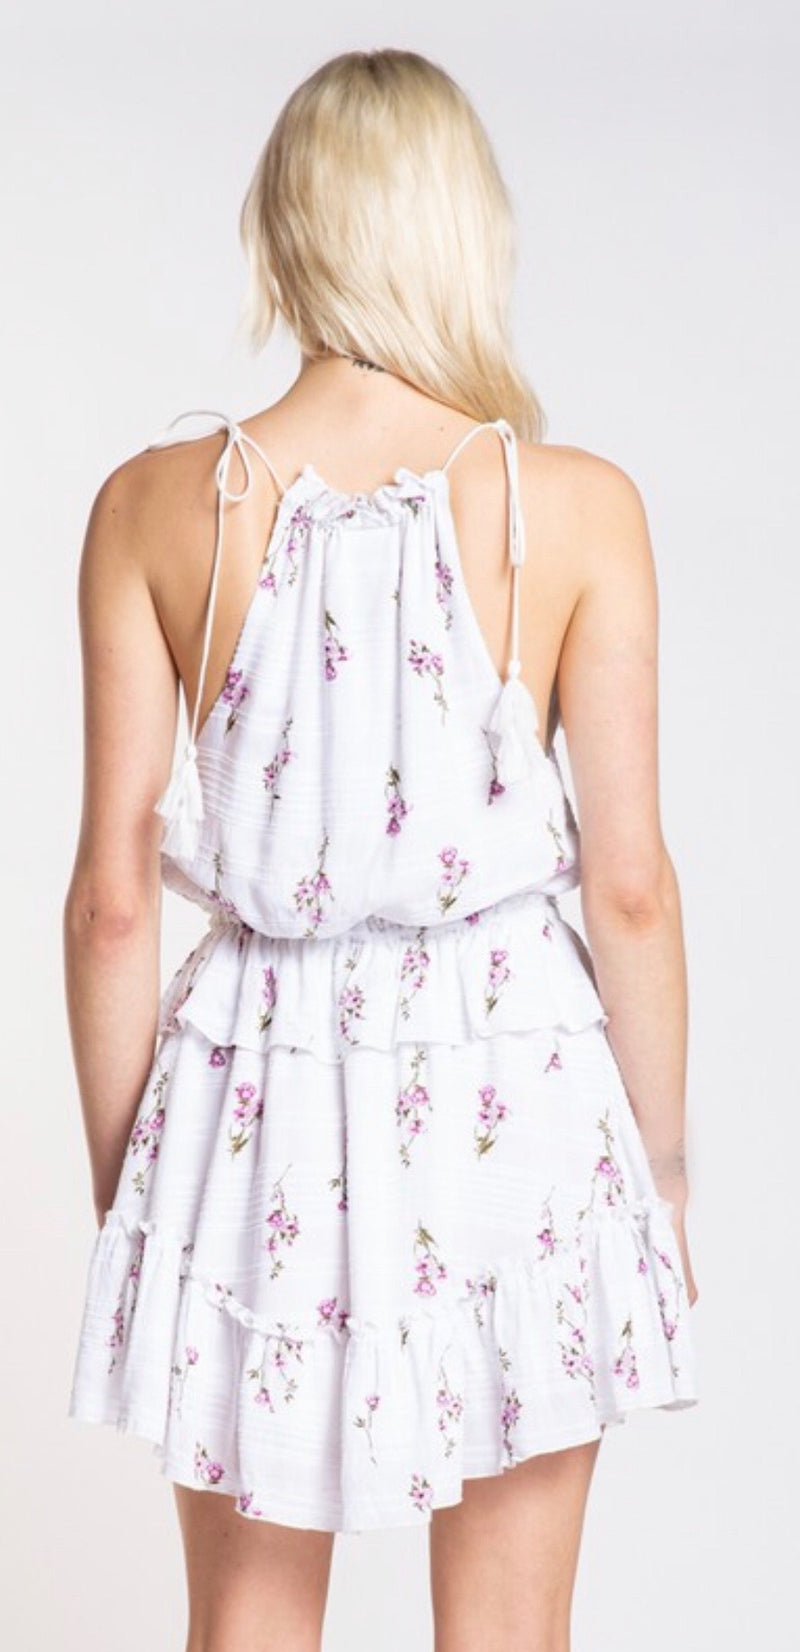 FLOWER PRINT TIED V-NECK RUFFLE MINI DRESS - RETAIL STORE